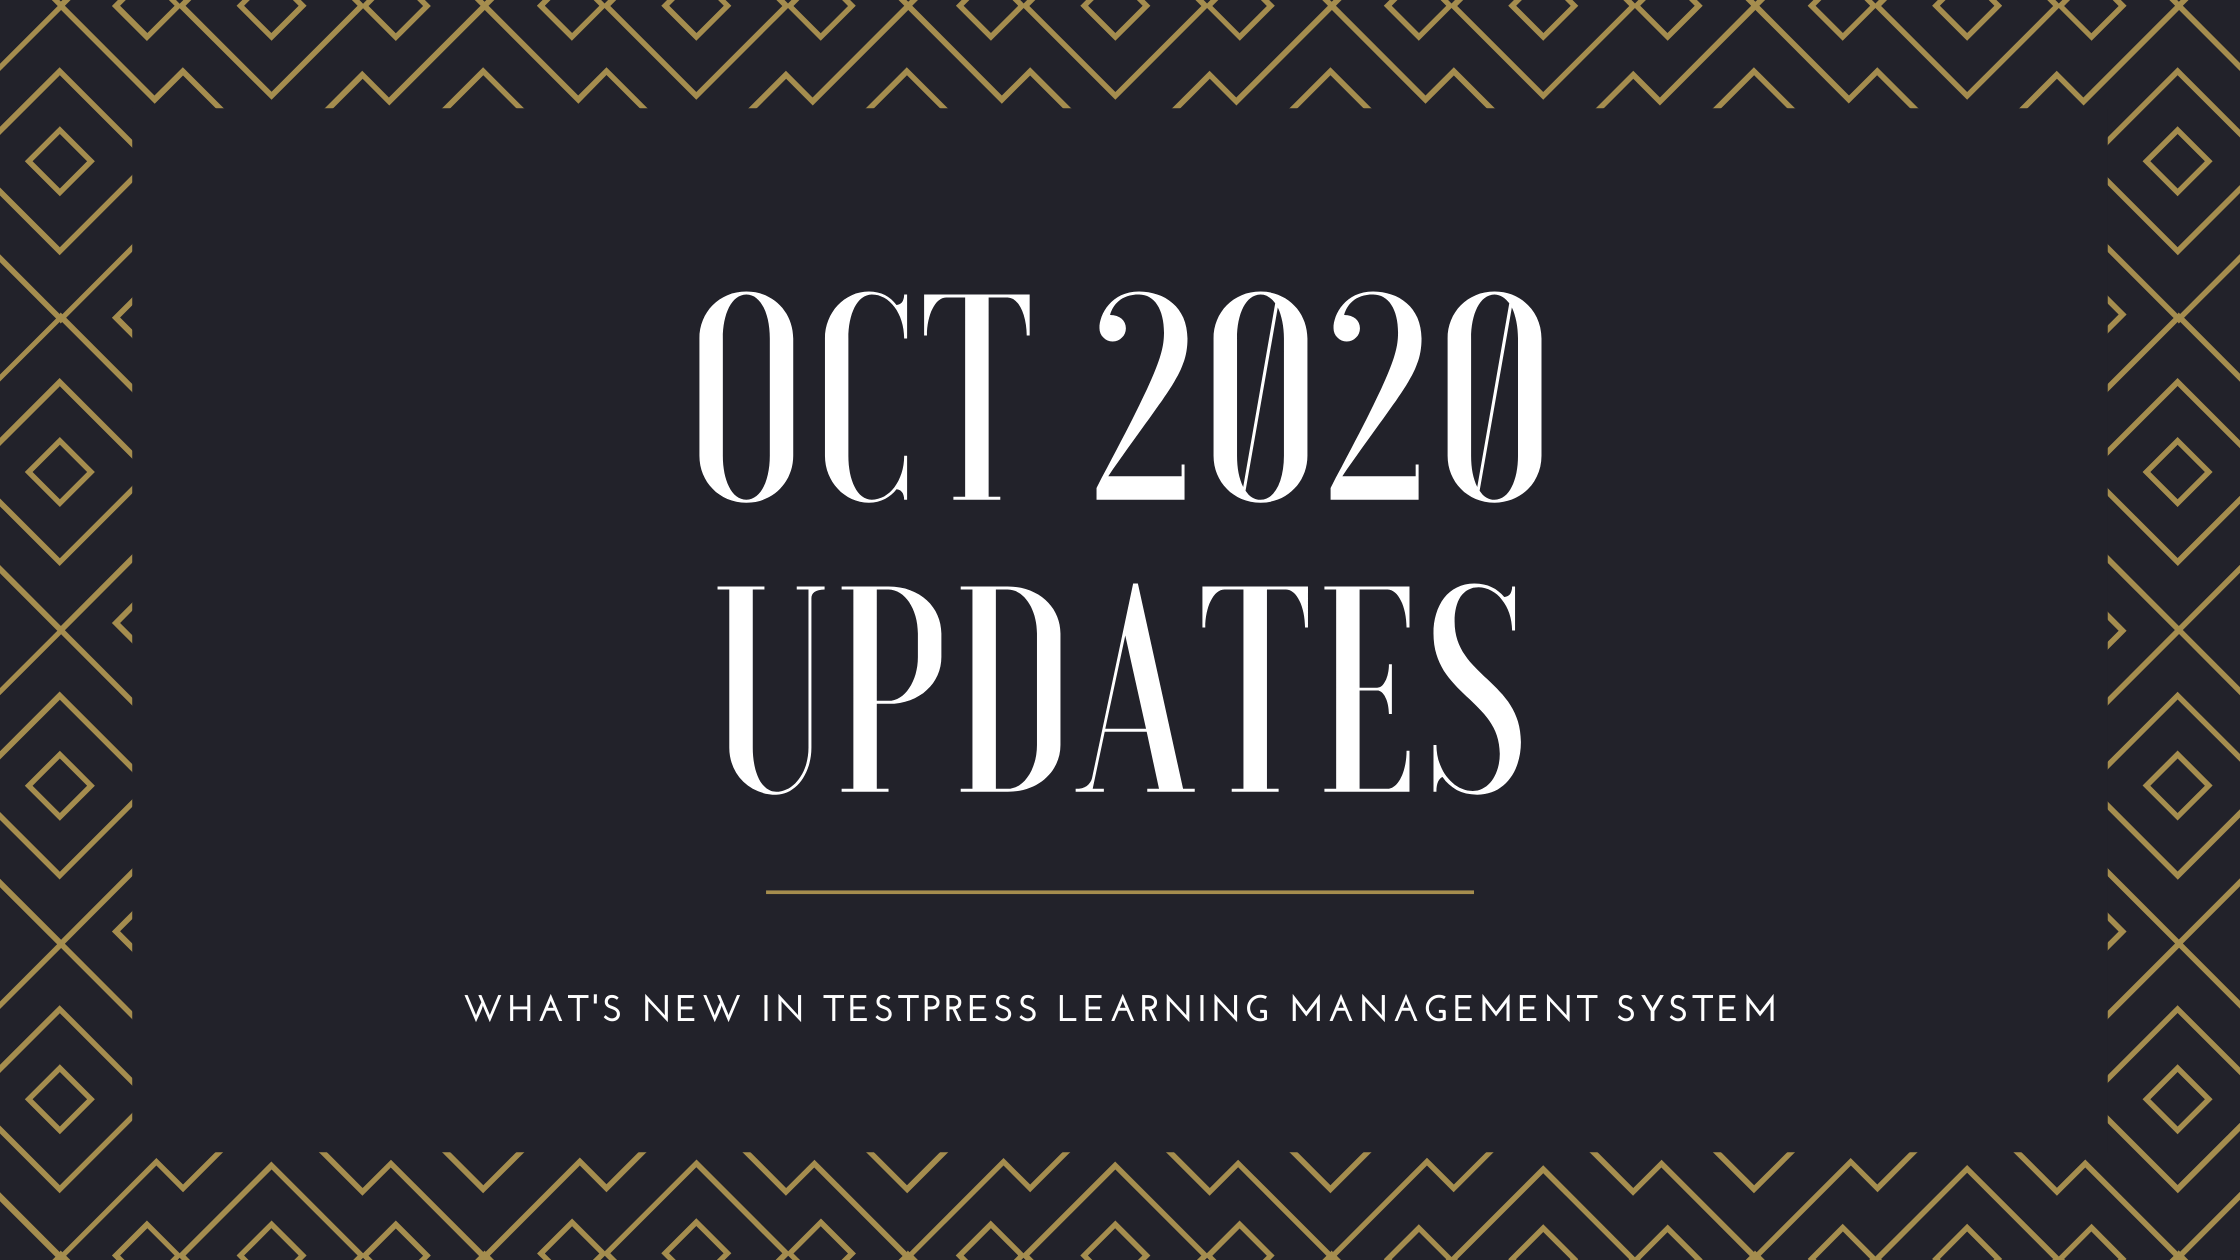 What's new in Testpress Learning Management System - Oct 2020